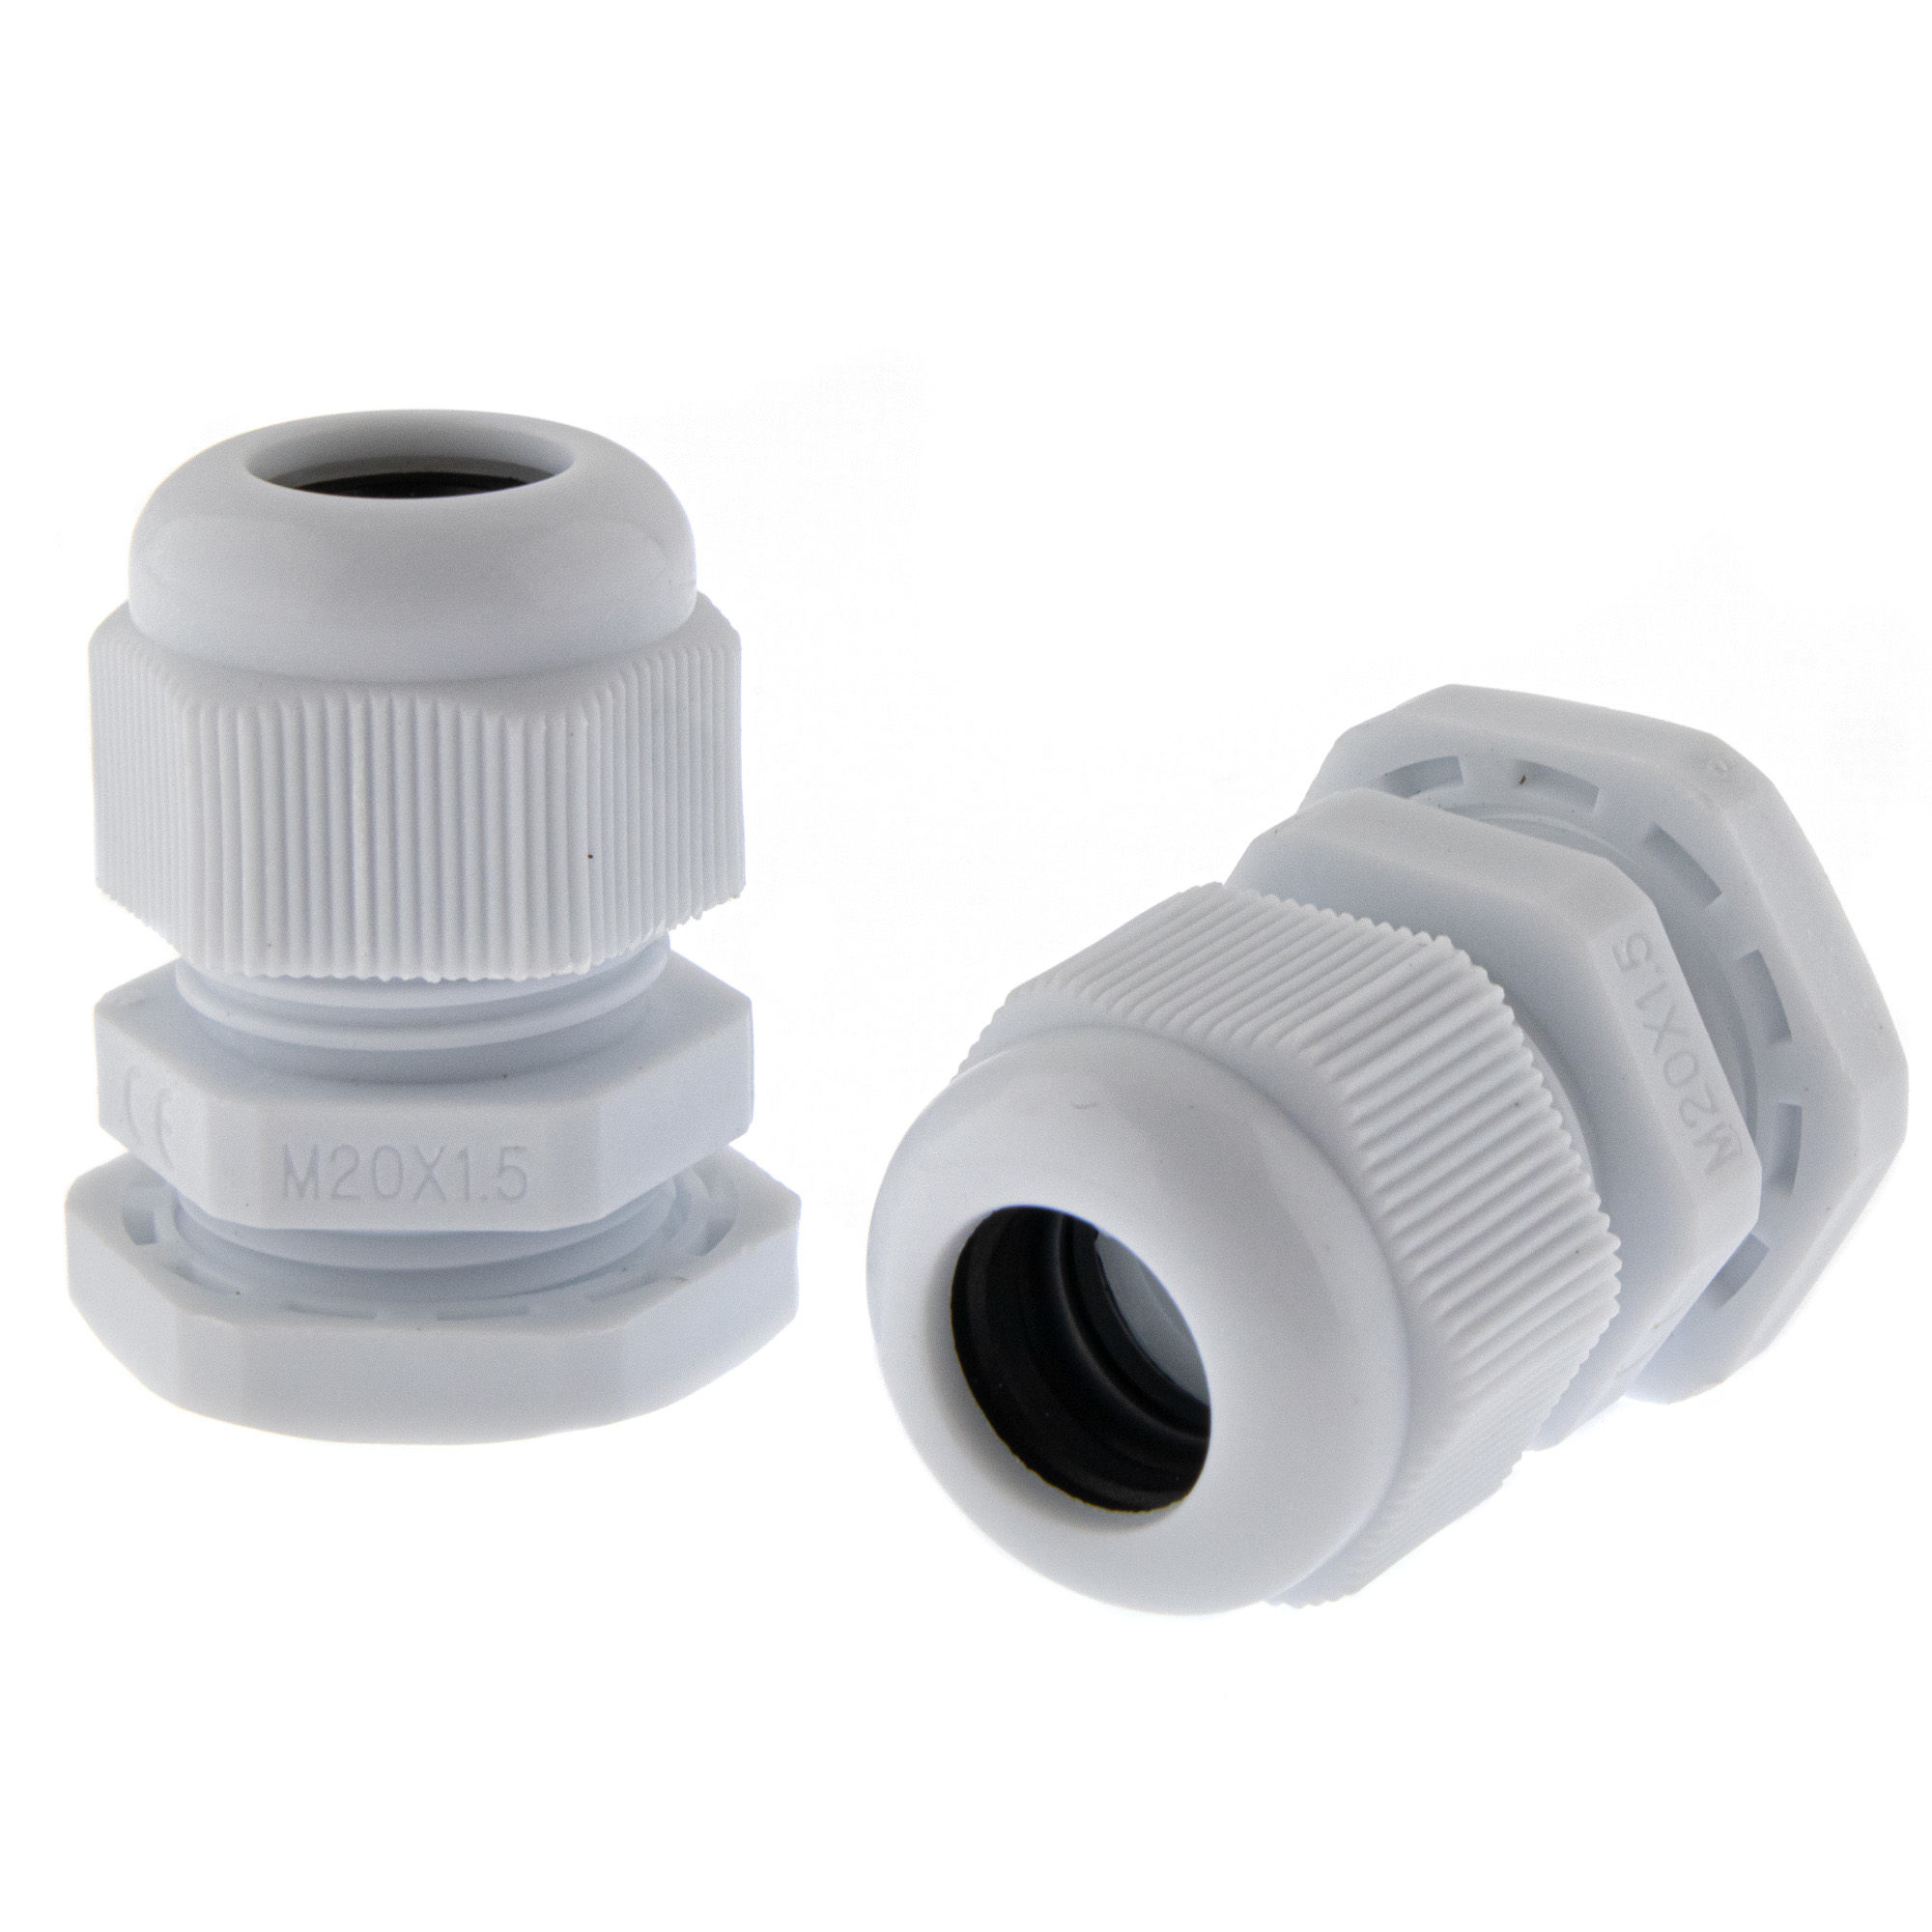 Cable gland M20 - grey